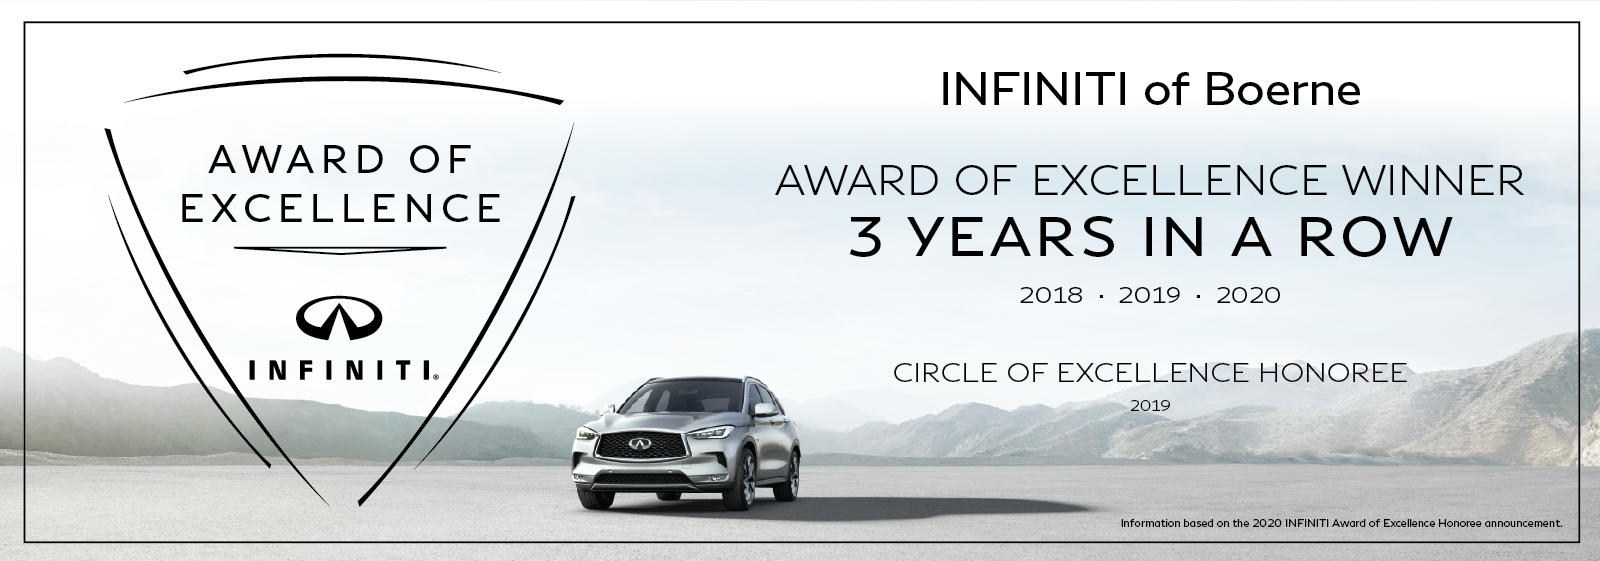 INFINITI of Boerne Award of Excellence